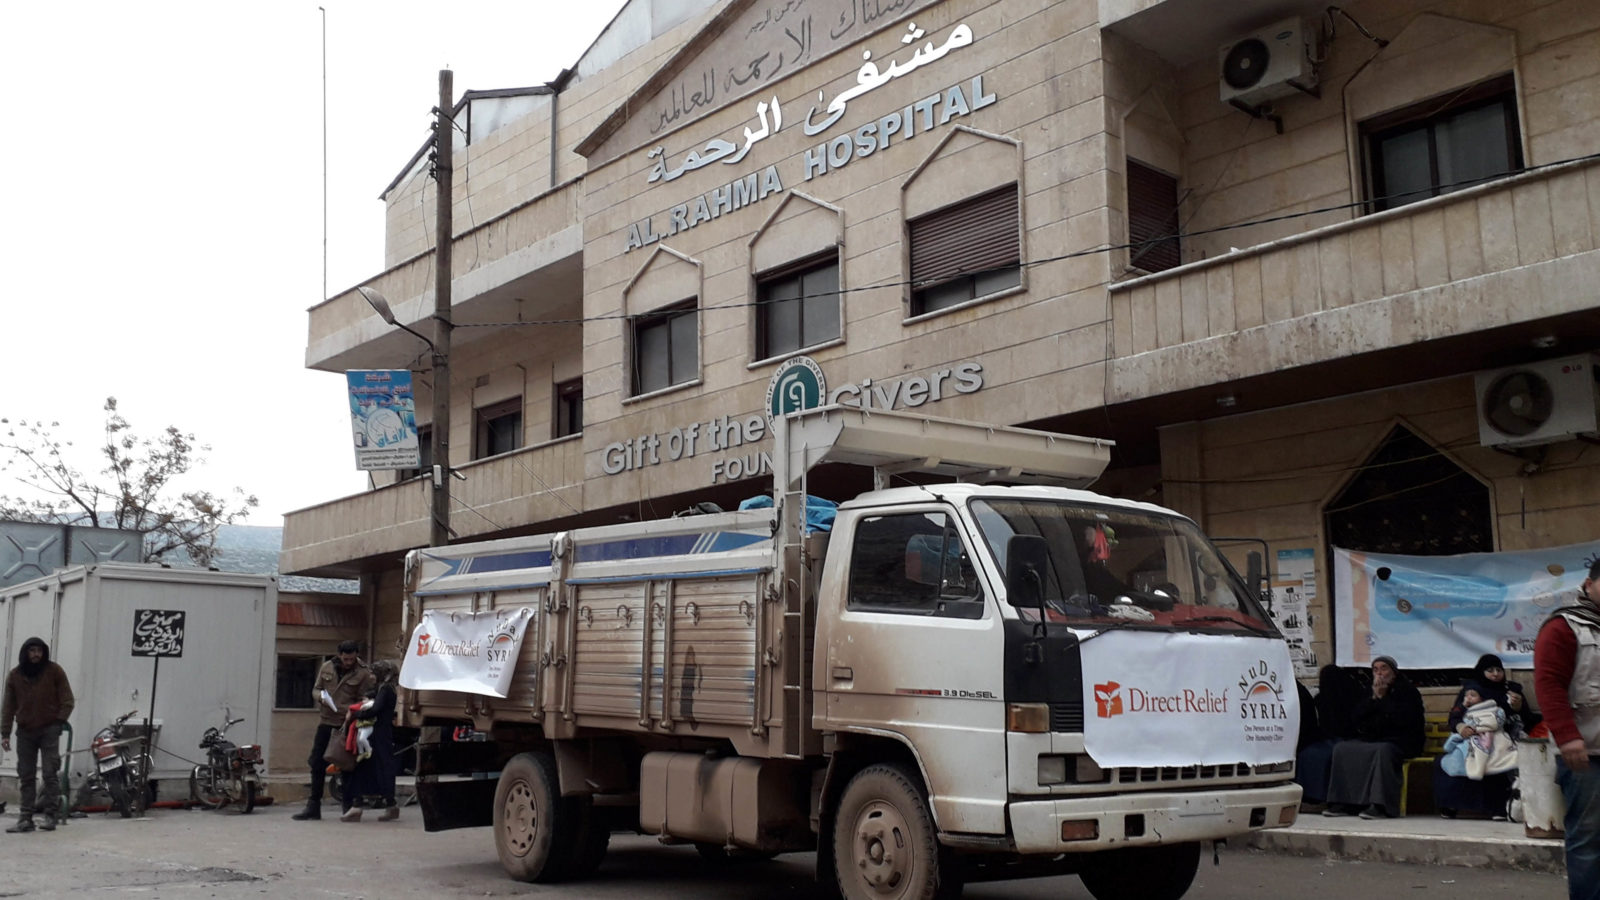 Essential medications and supplies arrived at Al-Rahma Hospital in northwestern Syria in March 2019. The shipment was sent to support healthcare to displaced communities in Syria and neighboring countries. (Photo courtesy of NuDay)